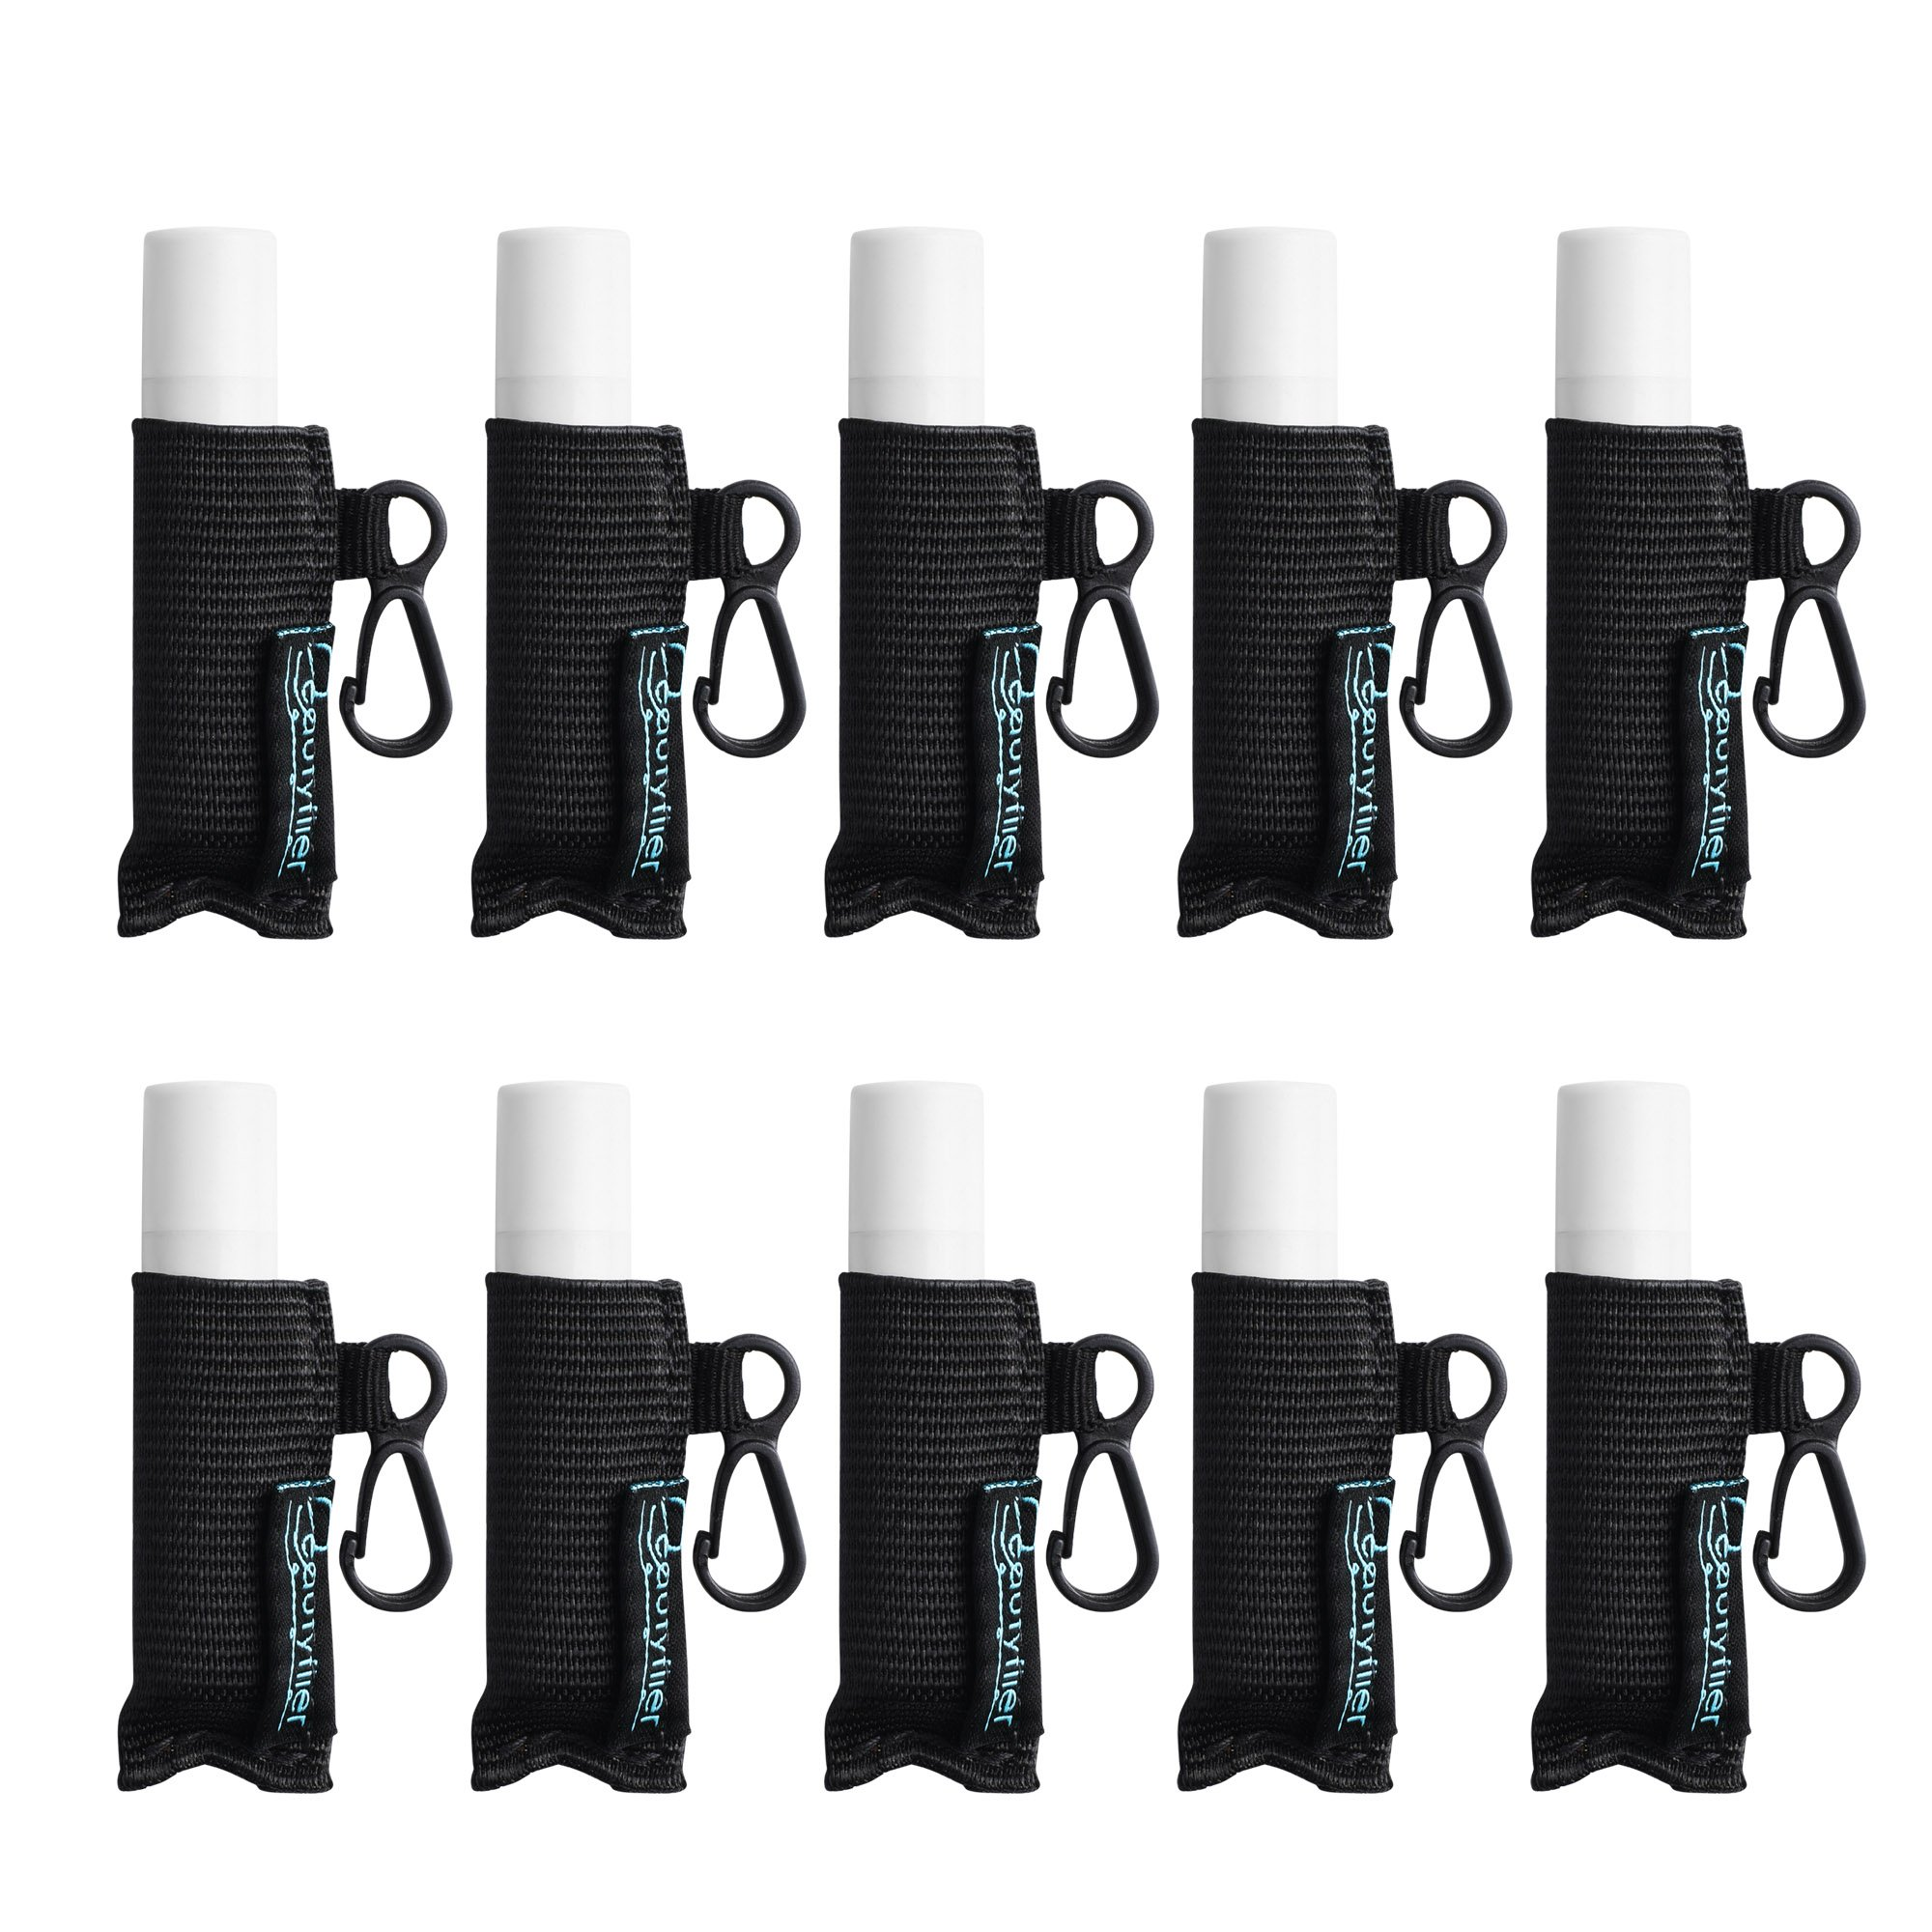 Beautyflier Pack of 10 Clip-on Sleeve Chapstick Pouch Keychain Lipstick Holder Elastic Lip Balm Holster Travel Accessories